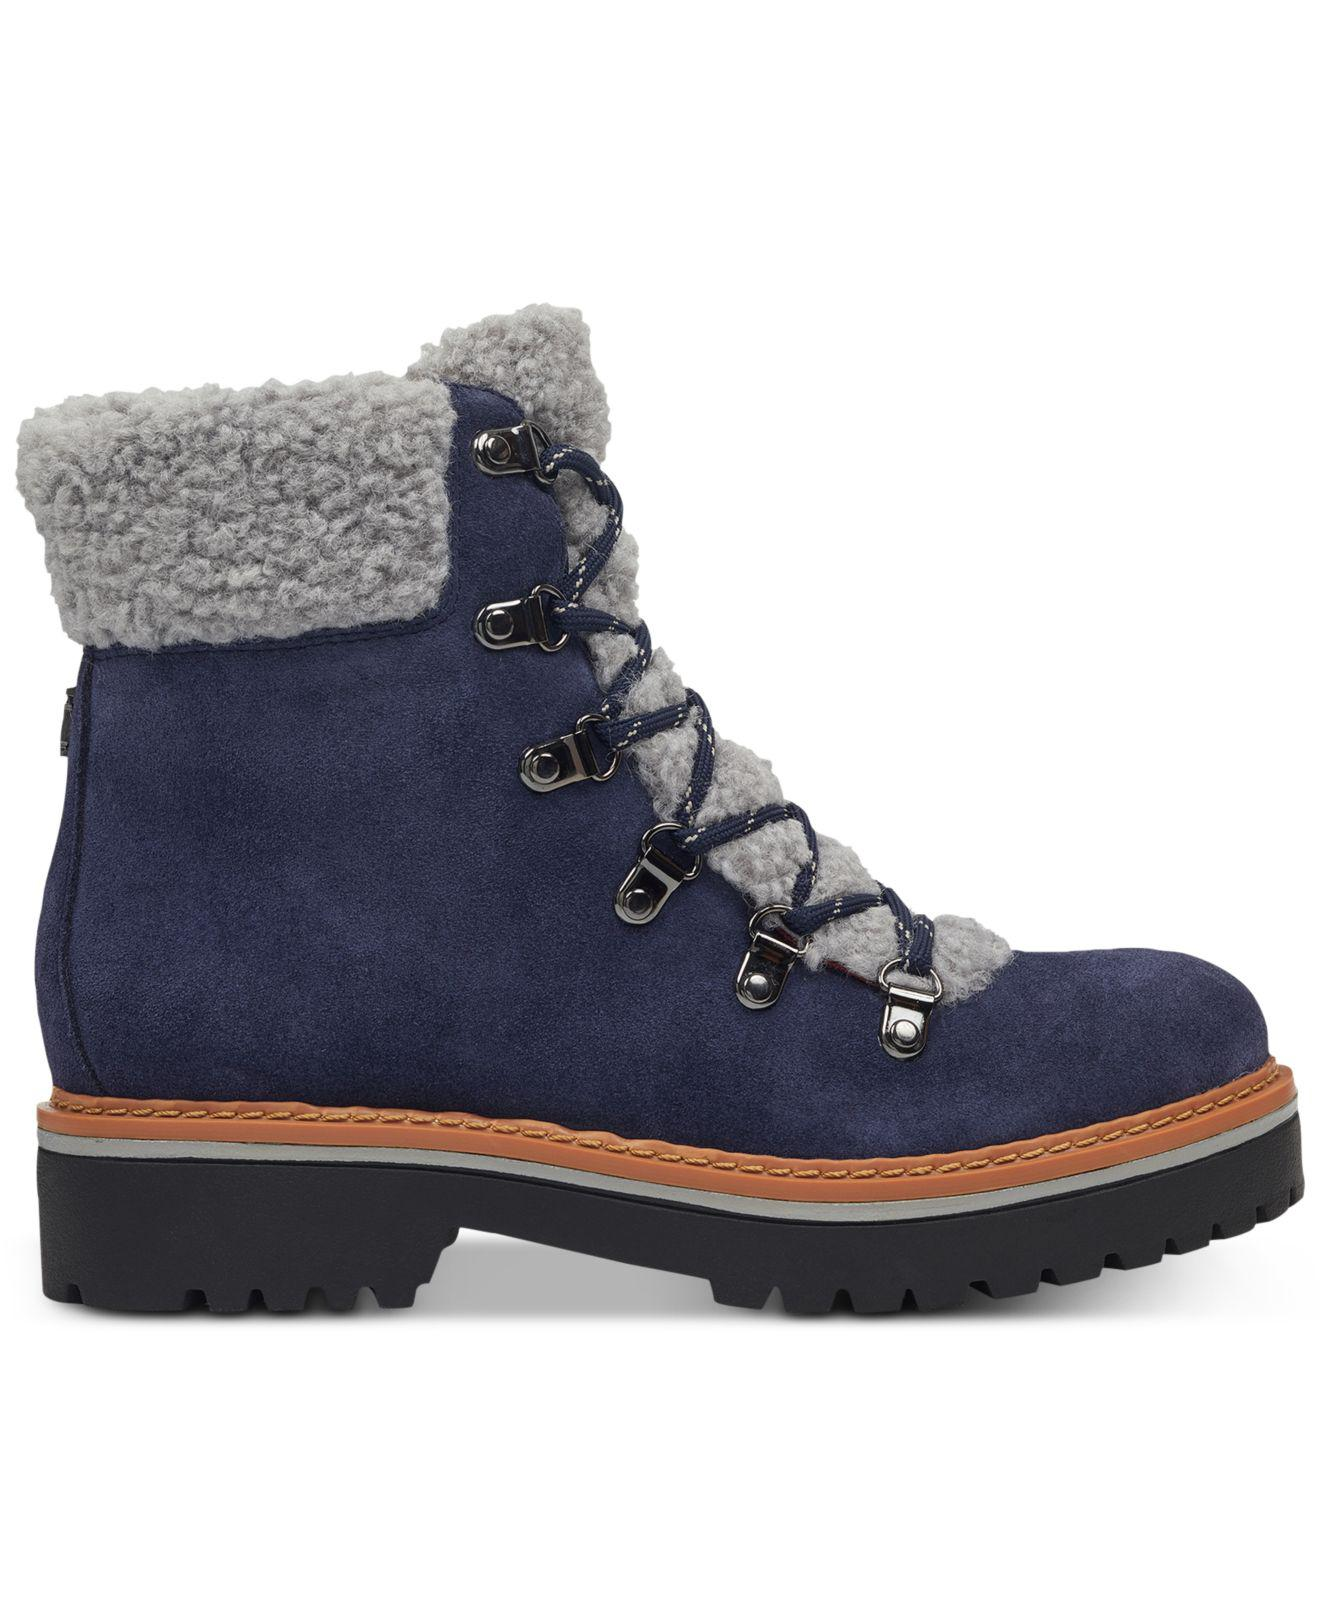 8a91a2f428c4d2 Tommy Hilfiger Women s Deeanne Block-Heel Boots -  Lyst - Tommy Hilfiger  Ron Lace-up Winter Boots in Blue best deals on 3984f ...